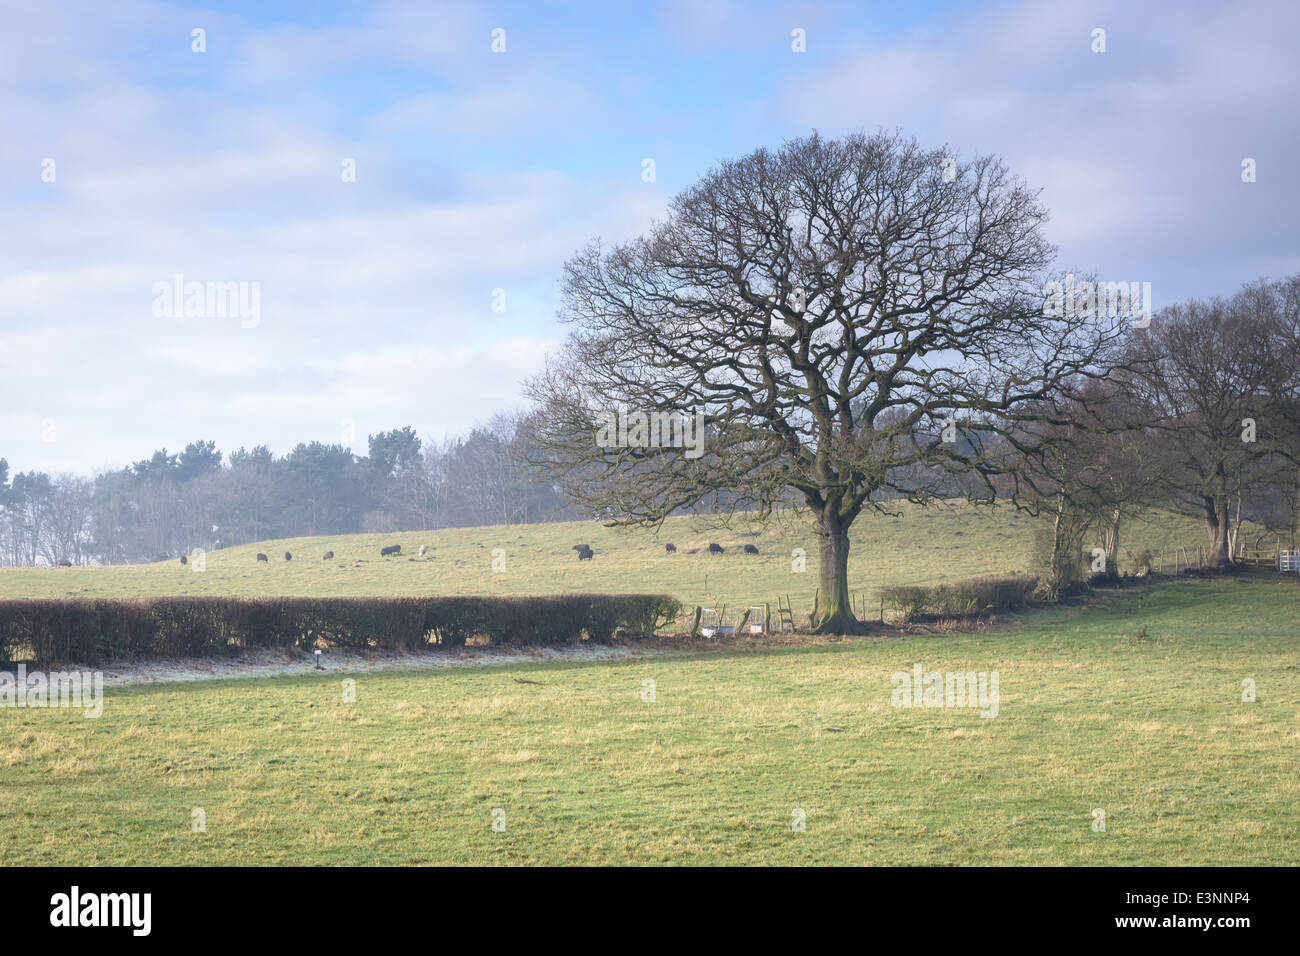 Frosty foggy field, fences and trees. grazing black sheep. Shropshire England. - Stock Image